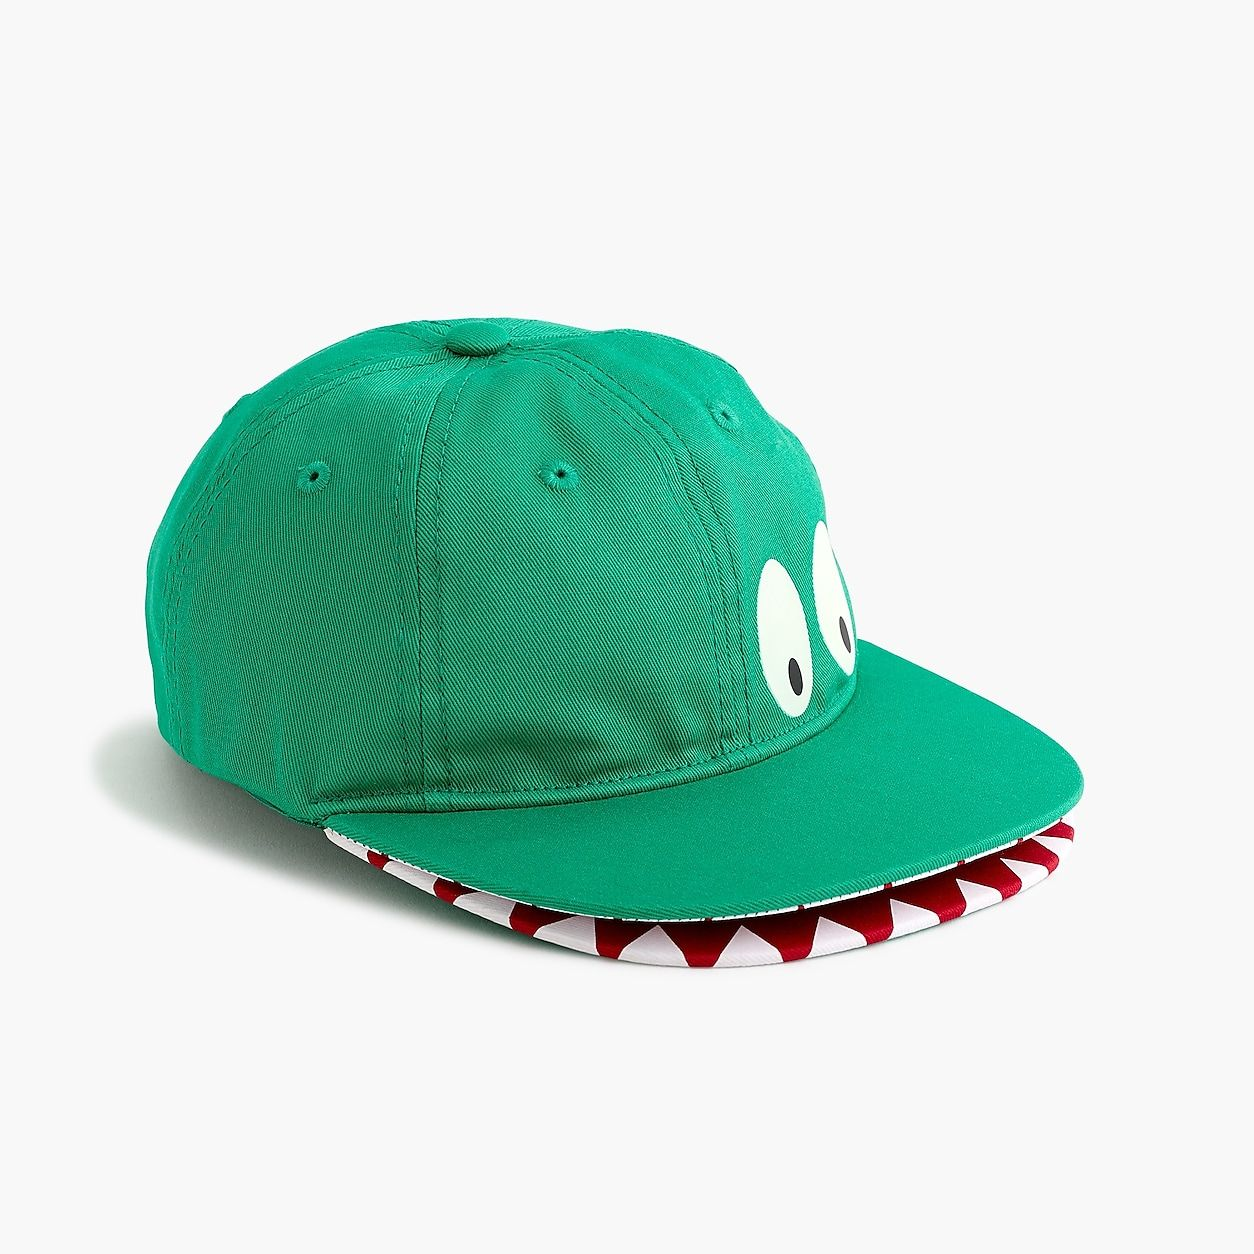 6ebce765974 crewcuts Max The Monster Ball Cap in 2019